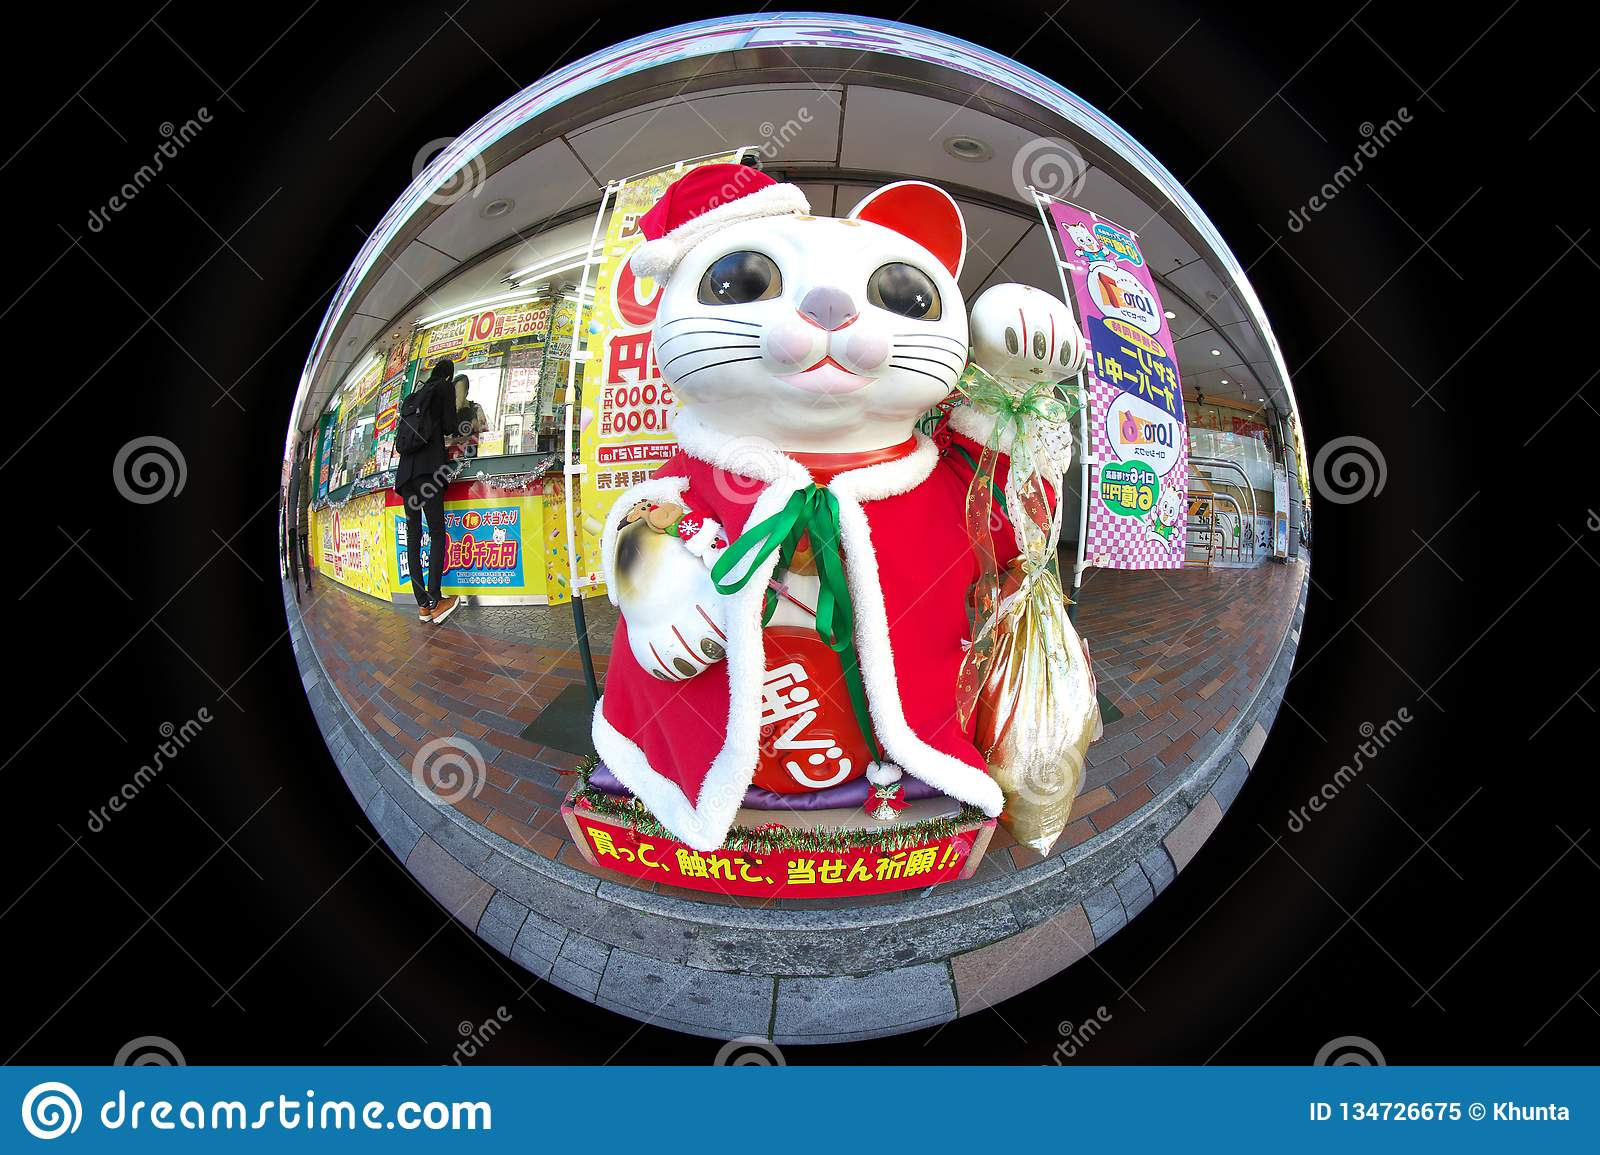 A big beckoning cat or a lucky cat in front of lottery shop